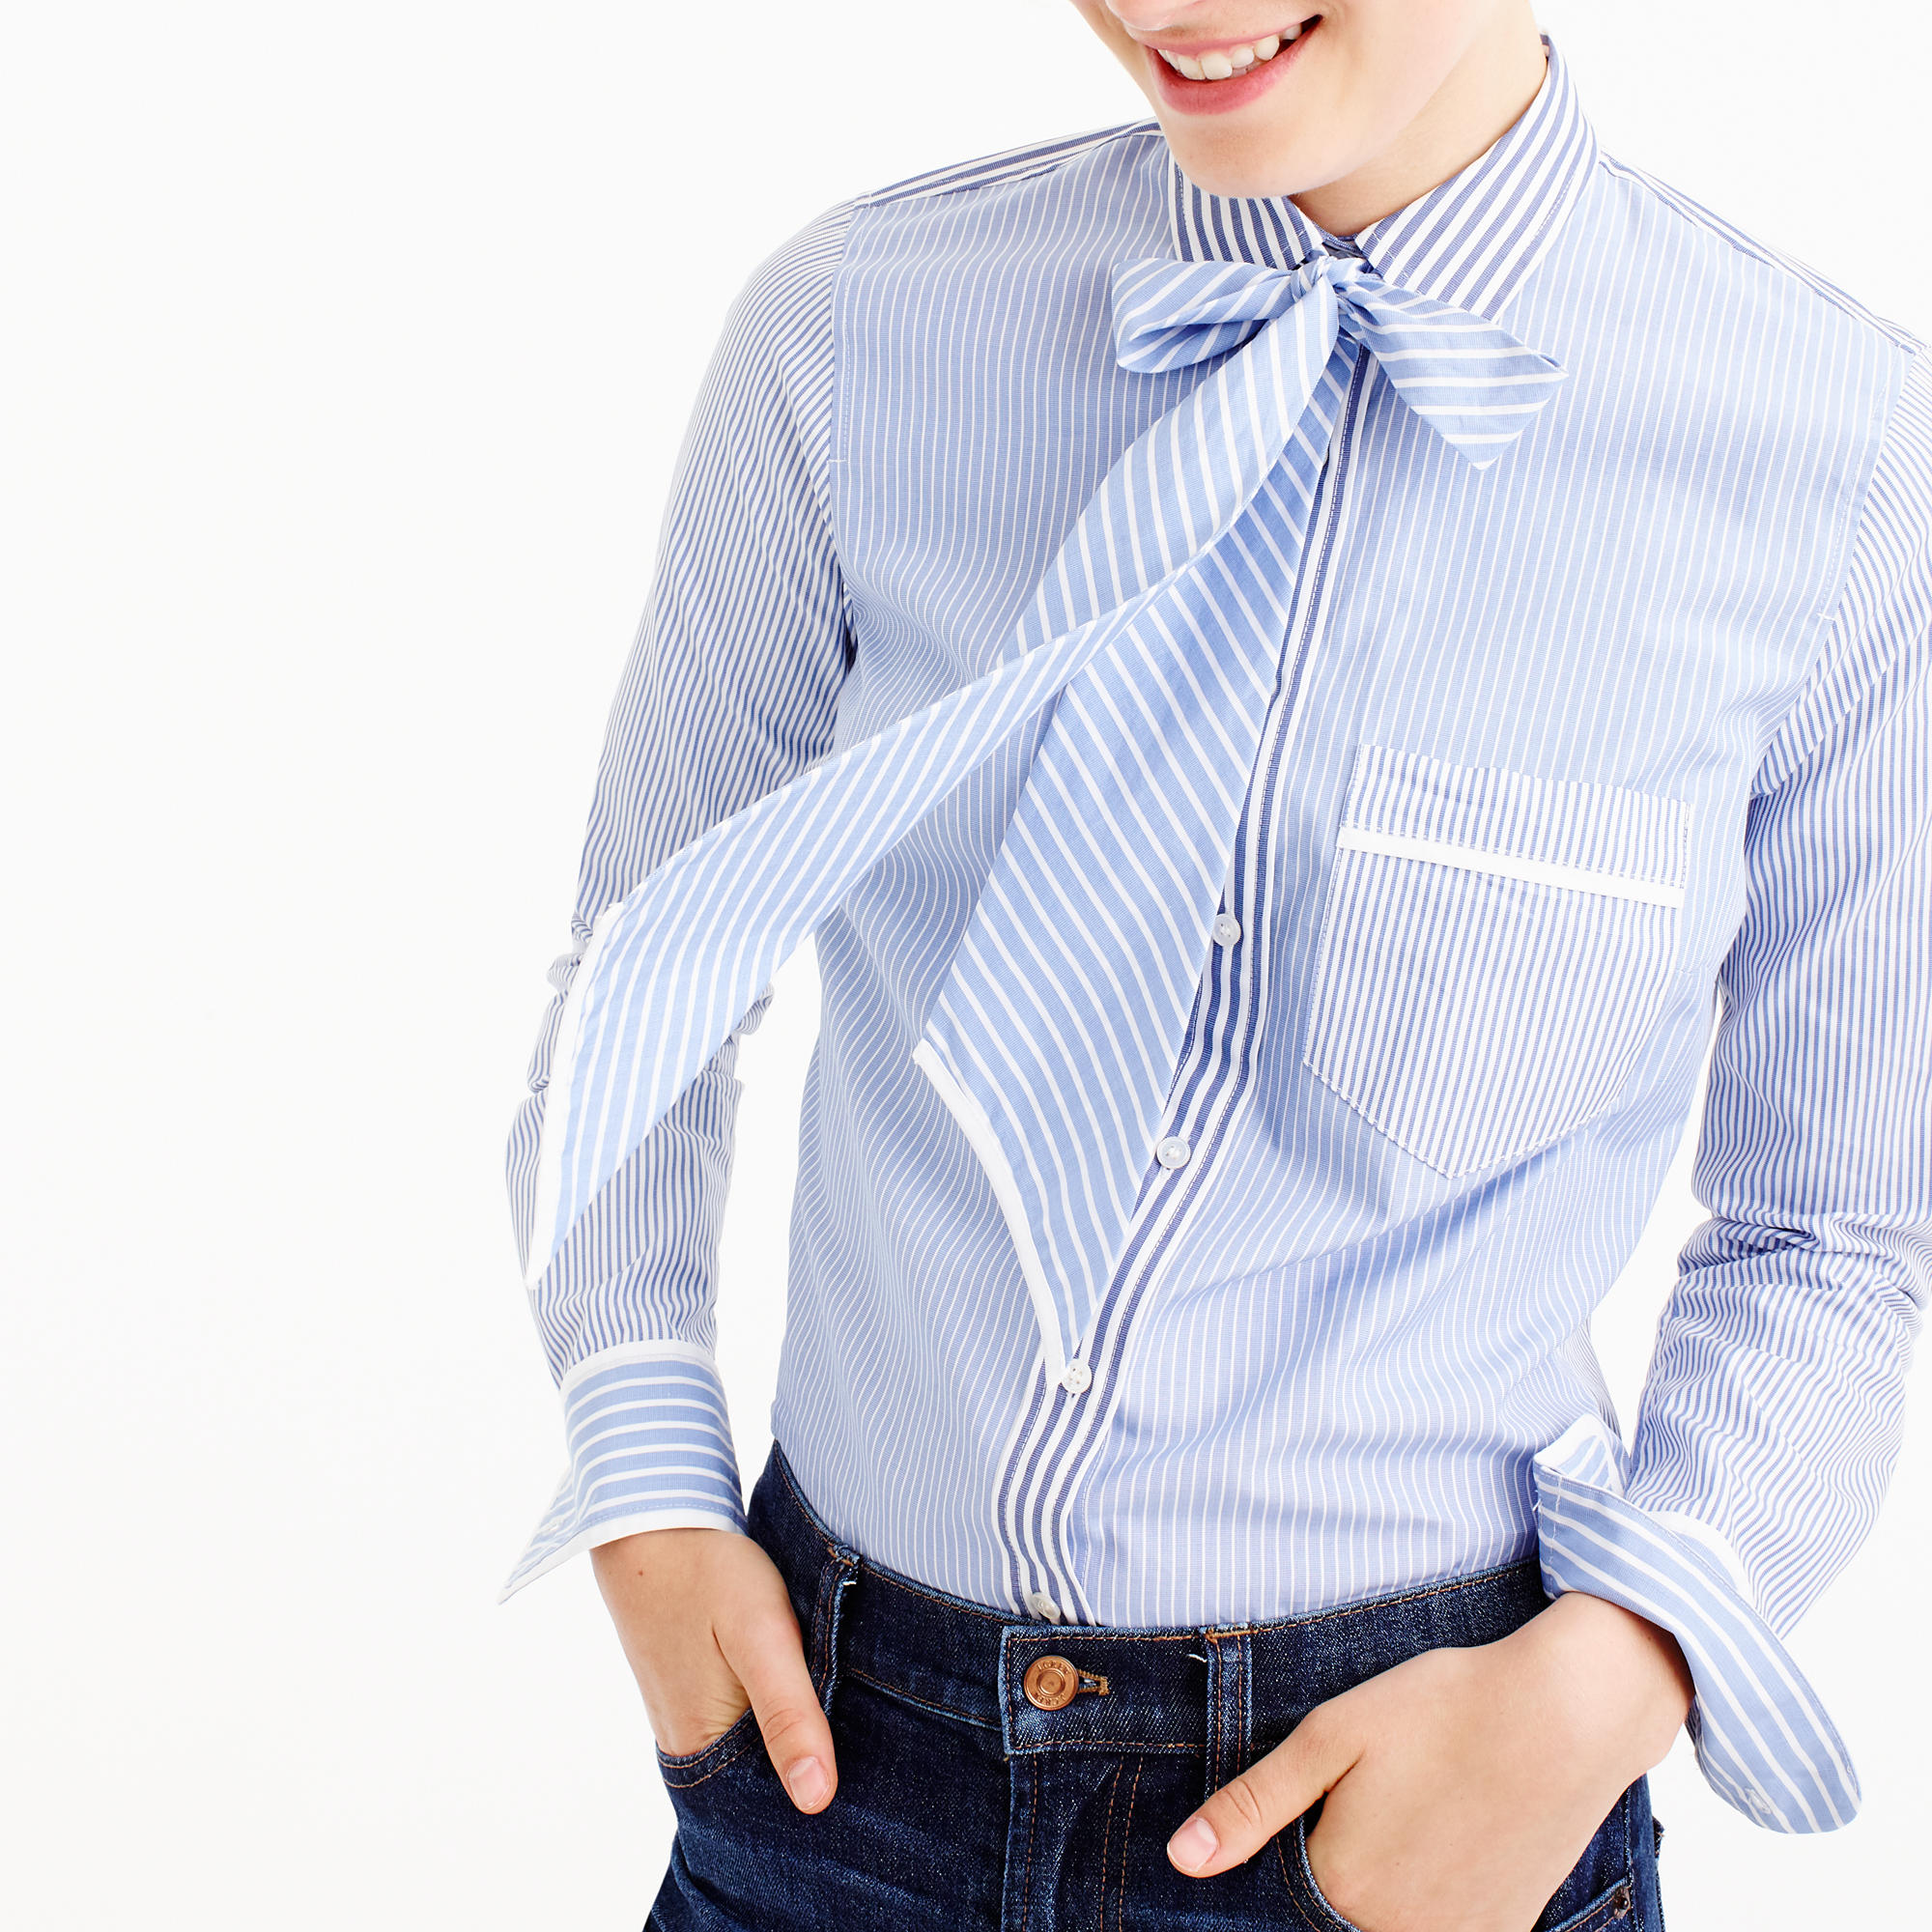 J Crew neck tie cocktail shirt |  | see more on www.shoppingmycloset.com #jcrew